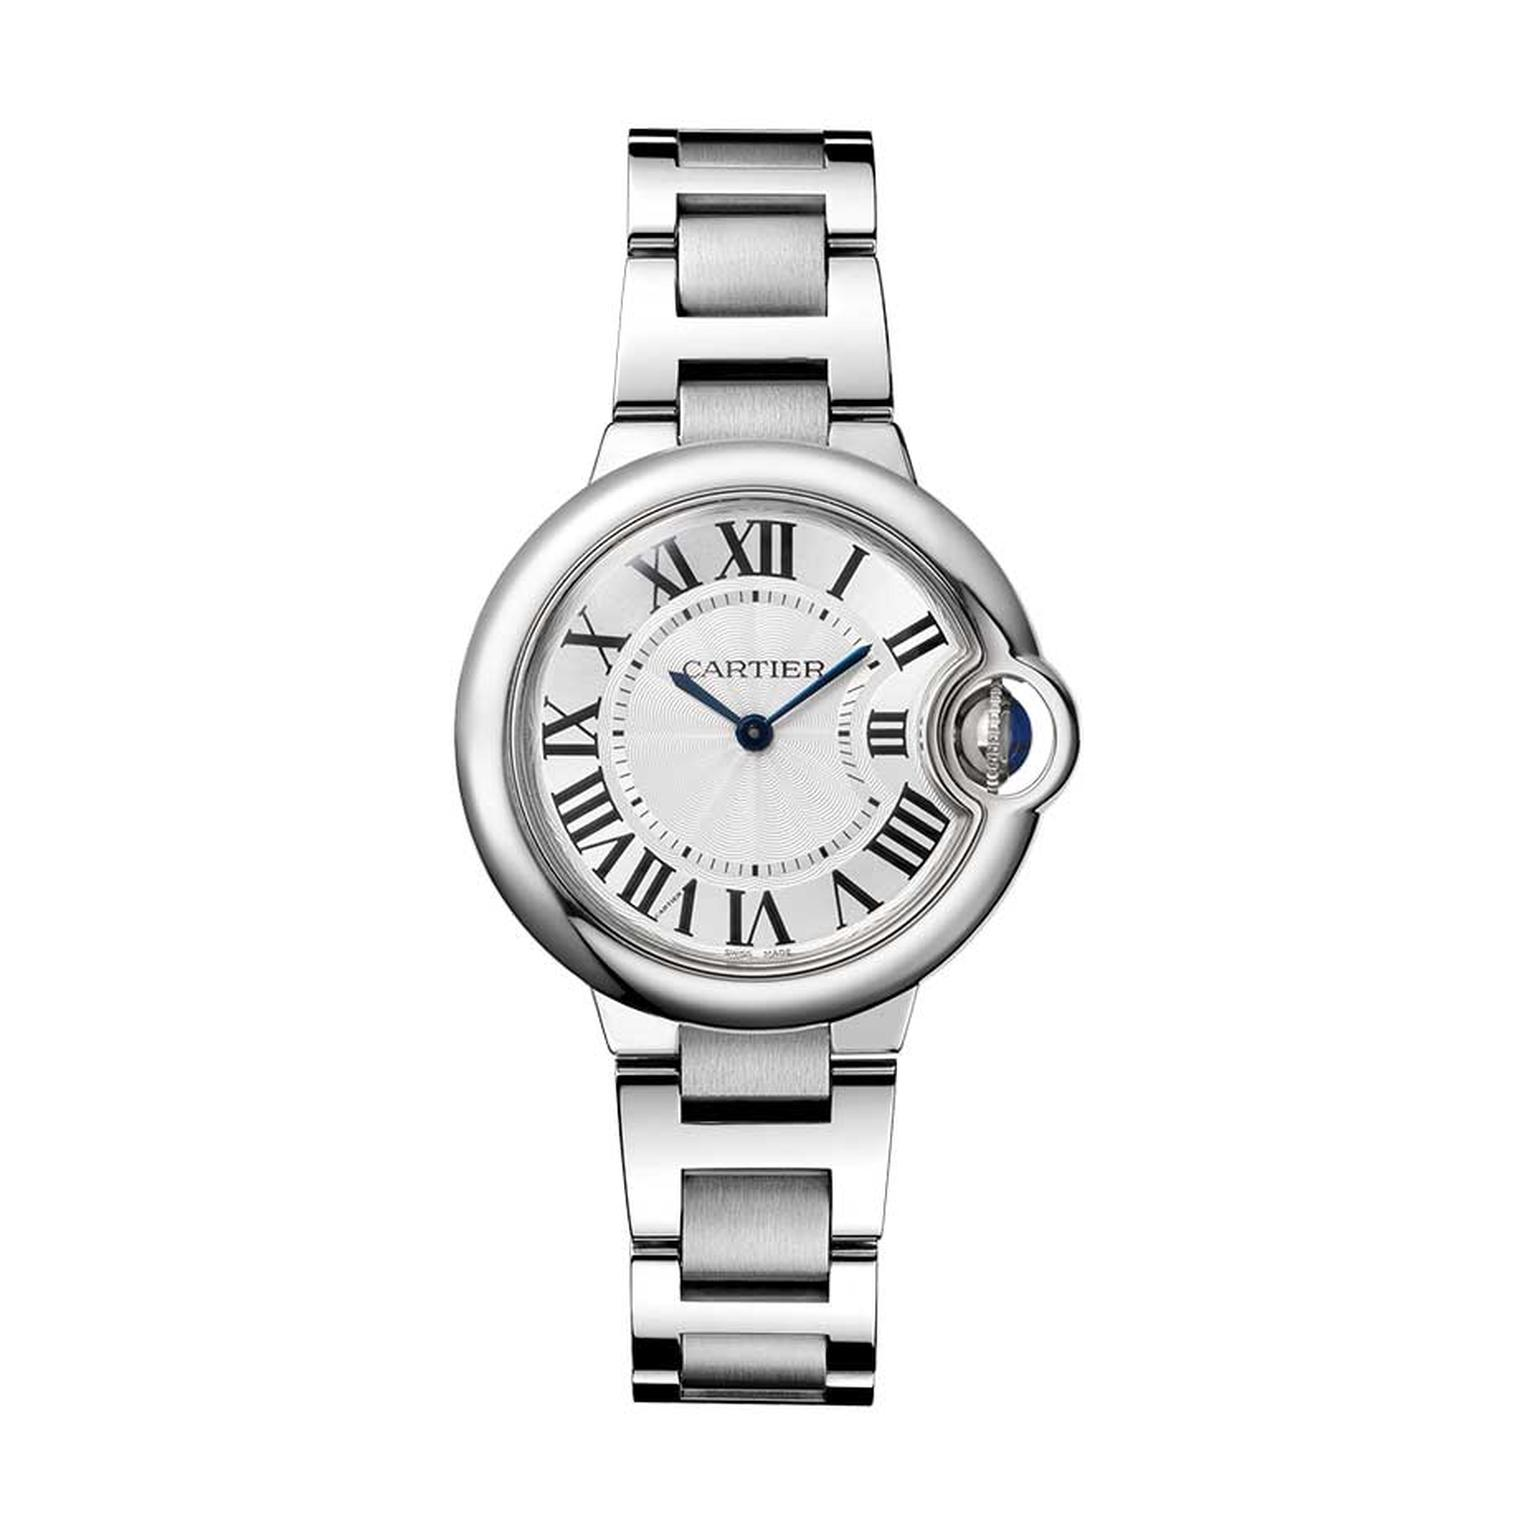 Cartier Ballon Bleu watch in stainless steel featuring a sapphire cabochon winding mechanism and guilloché dial (£3,300)